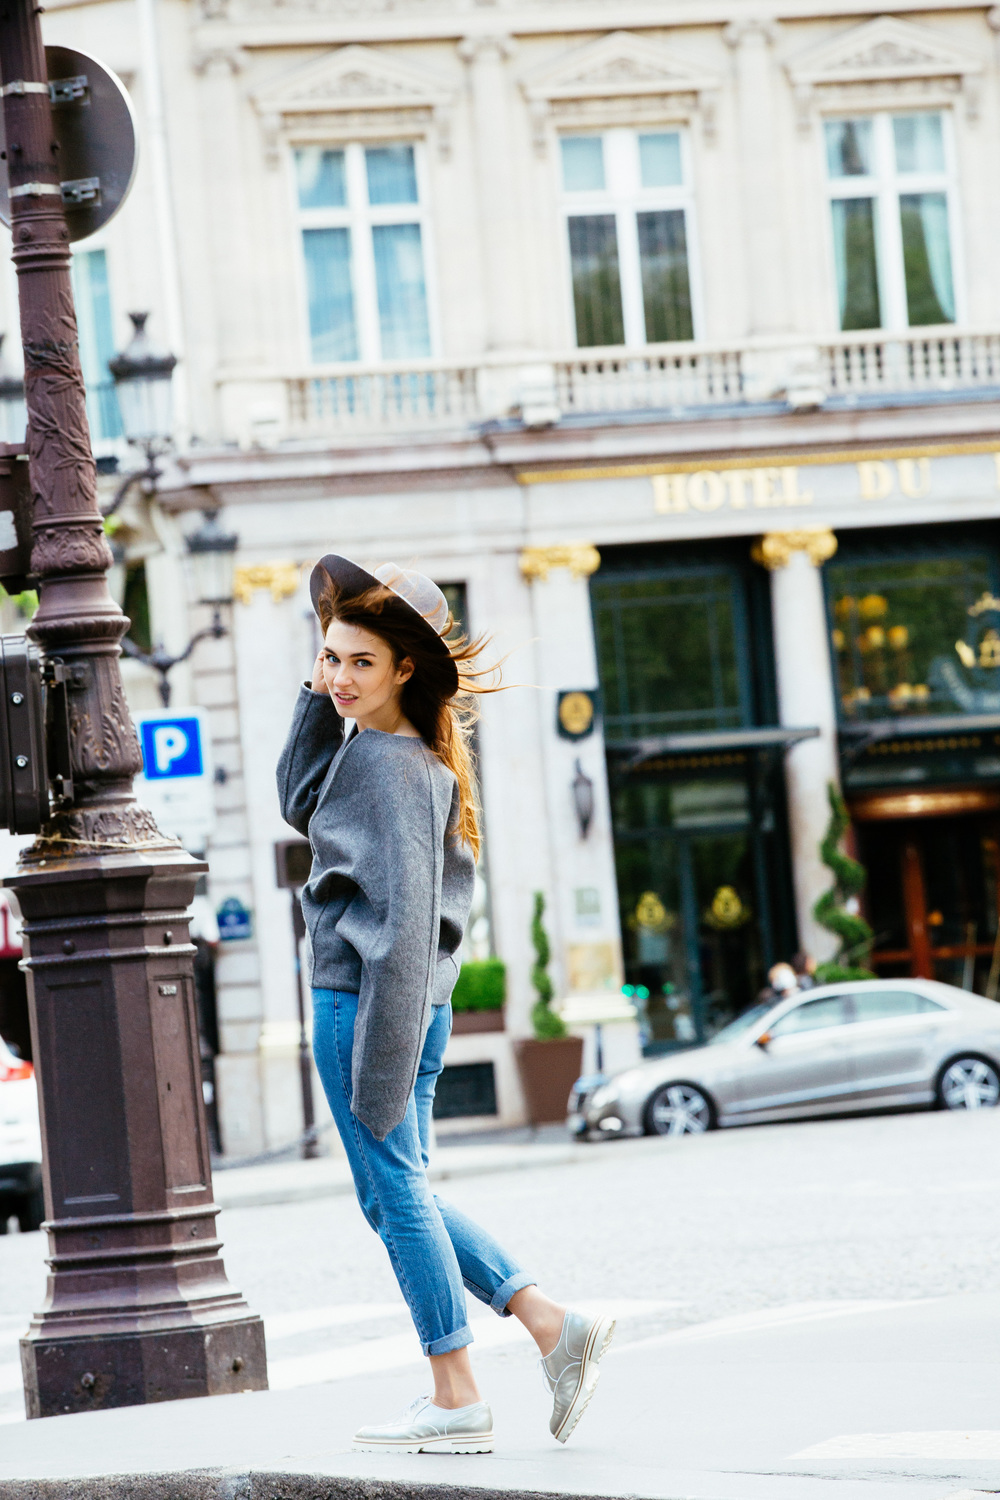 Paris Photographer Street style Lookbook Brand Iheartparisfr